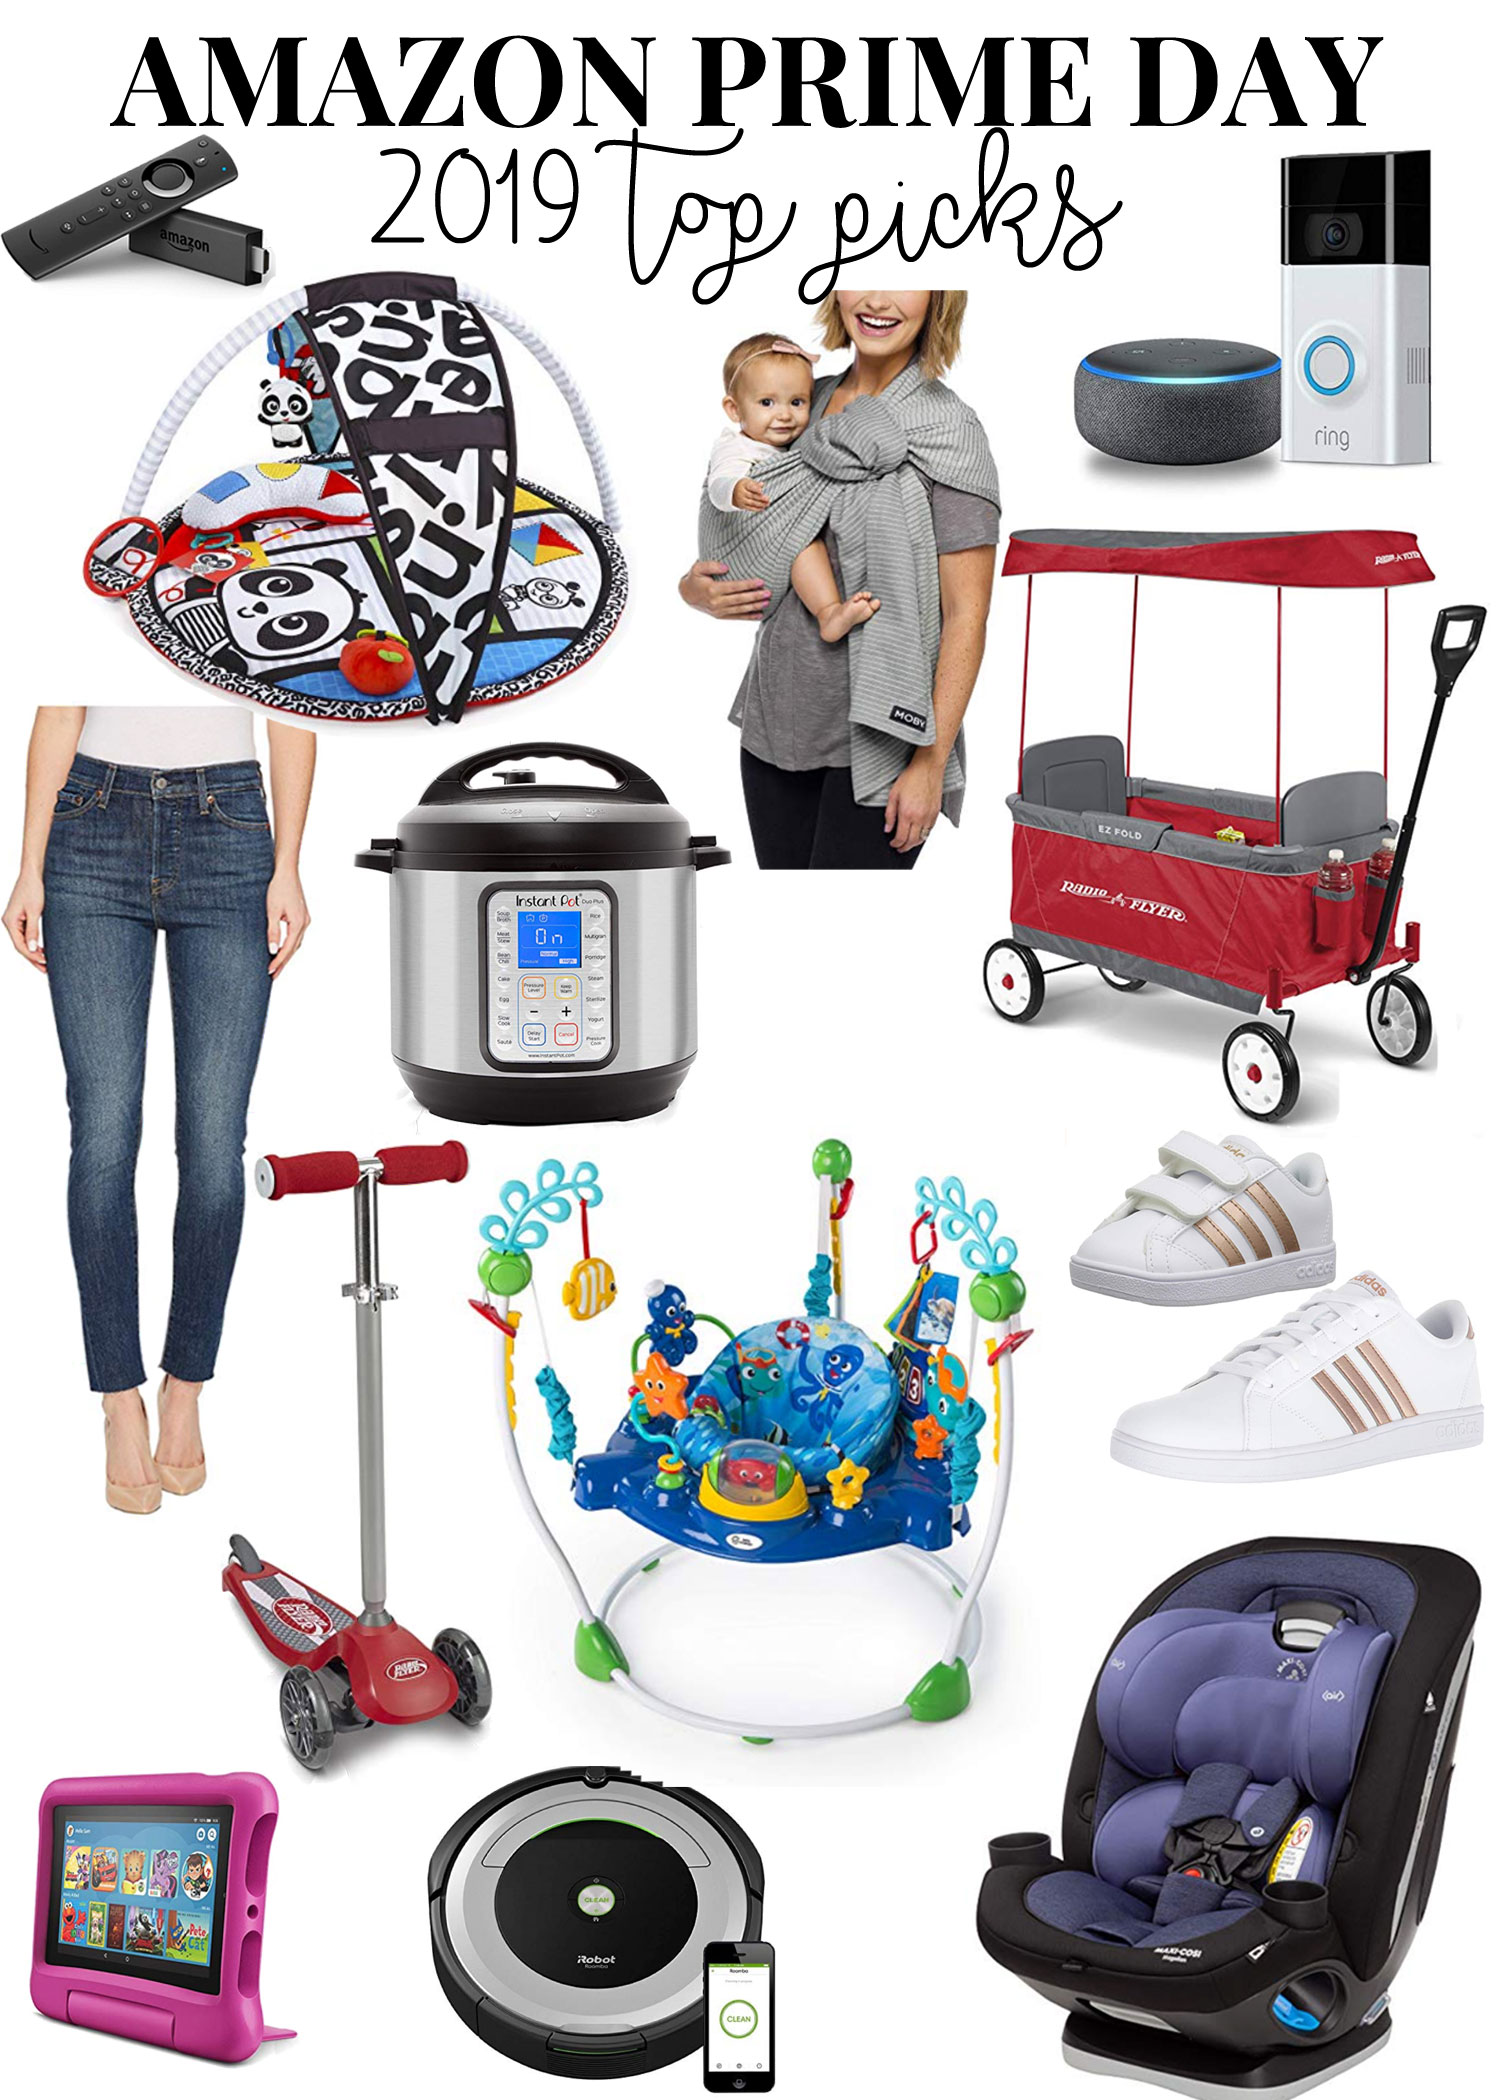 Amazon Prime Day 2019 top picks, including baby items, women's fashion, and home from bylaurenm.com